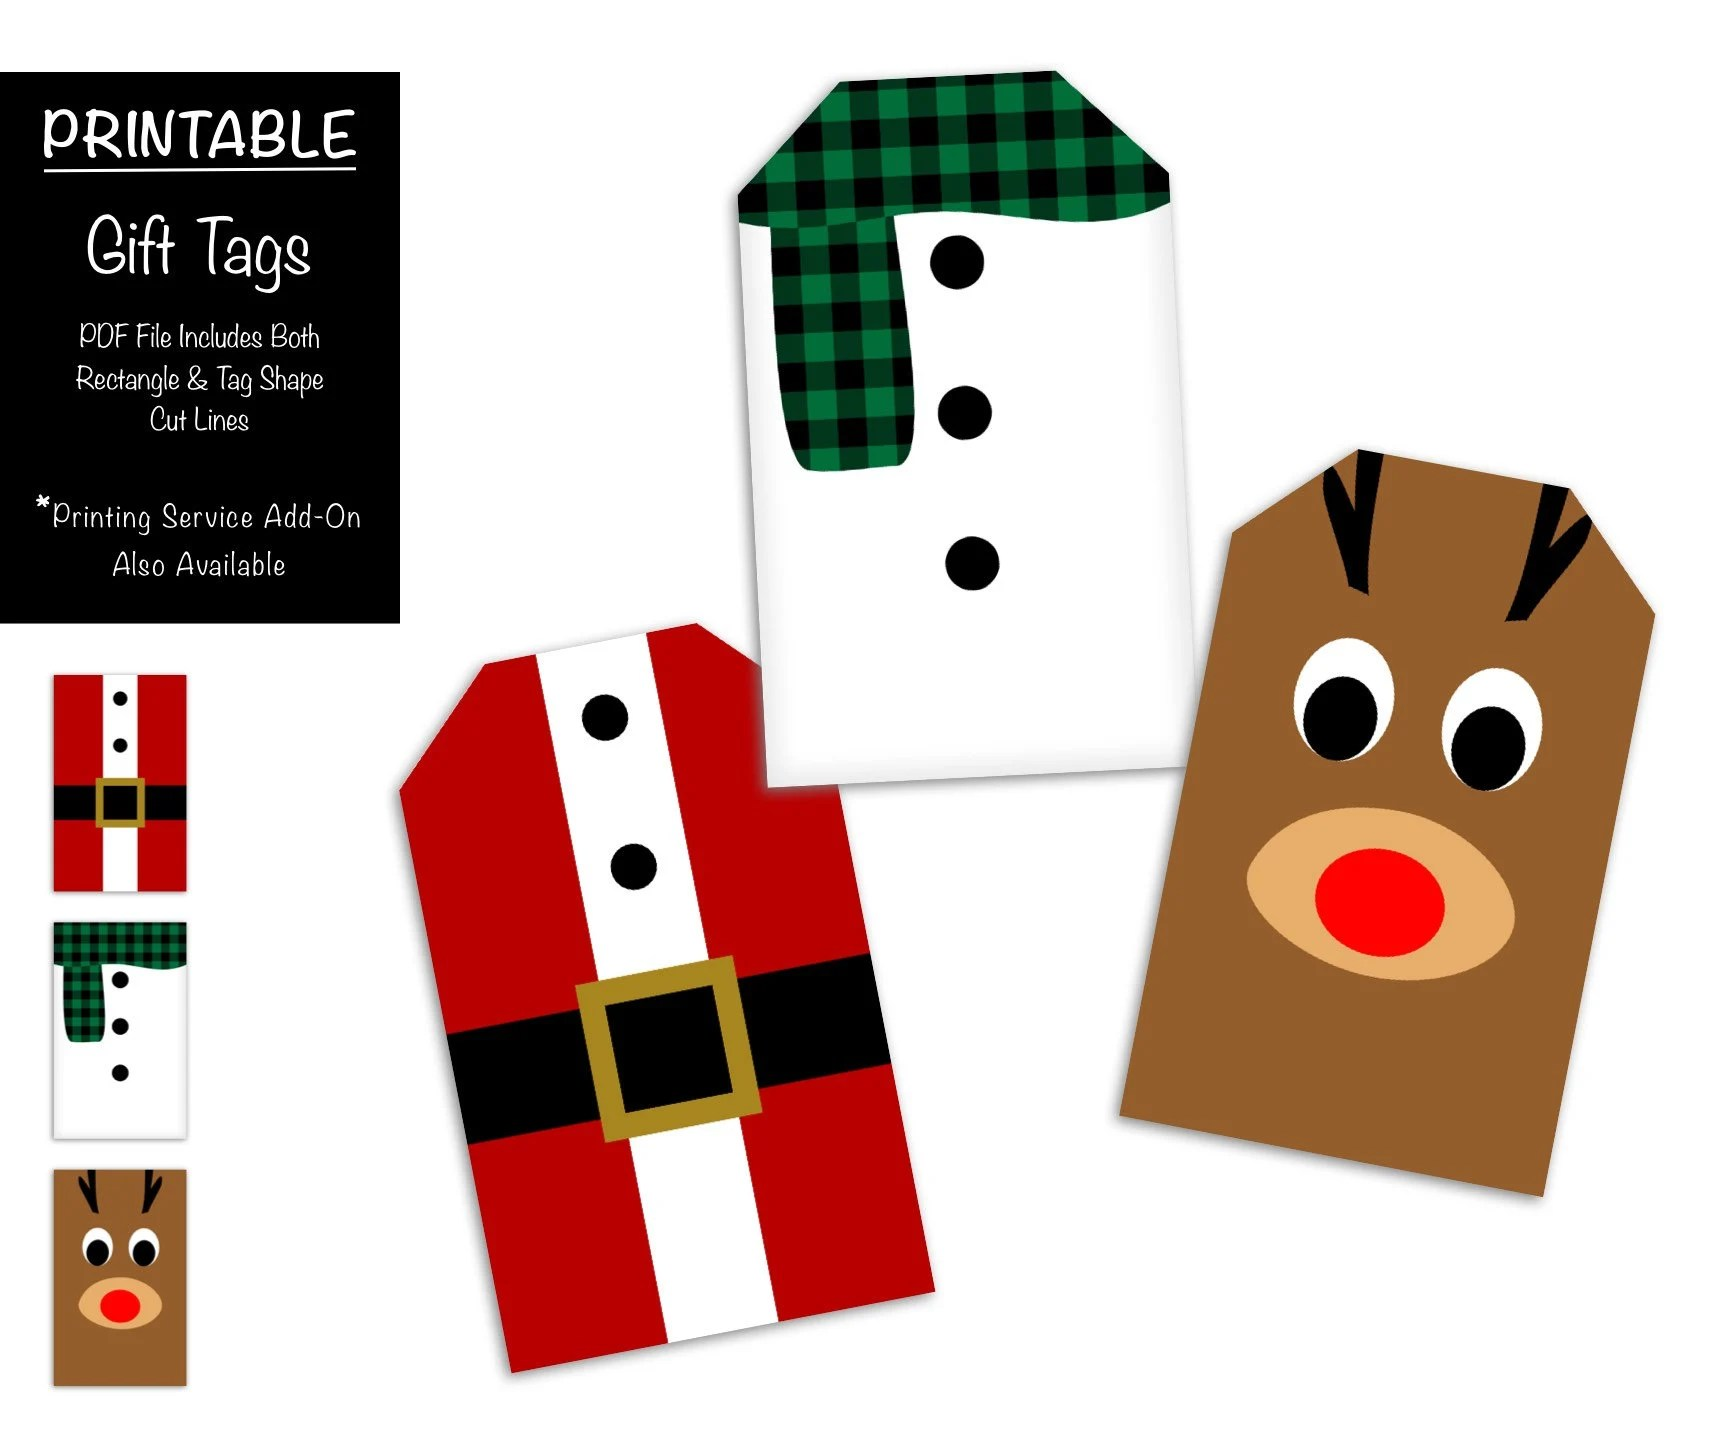 Cute Christmas Gift Tags PRINTABLE, Santa Claus Suit, Snowman